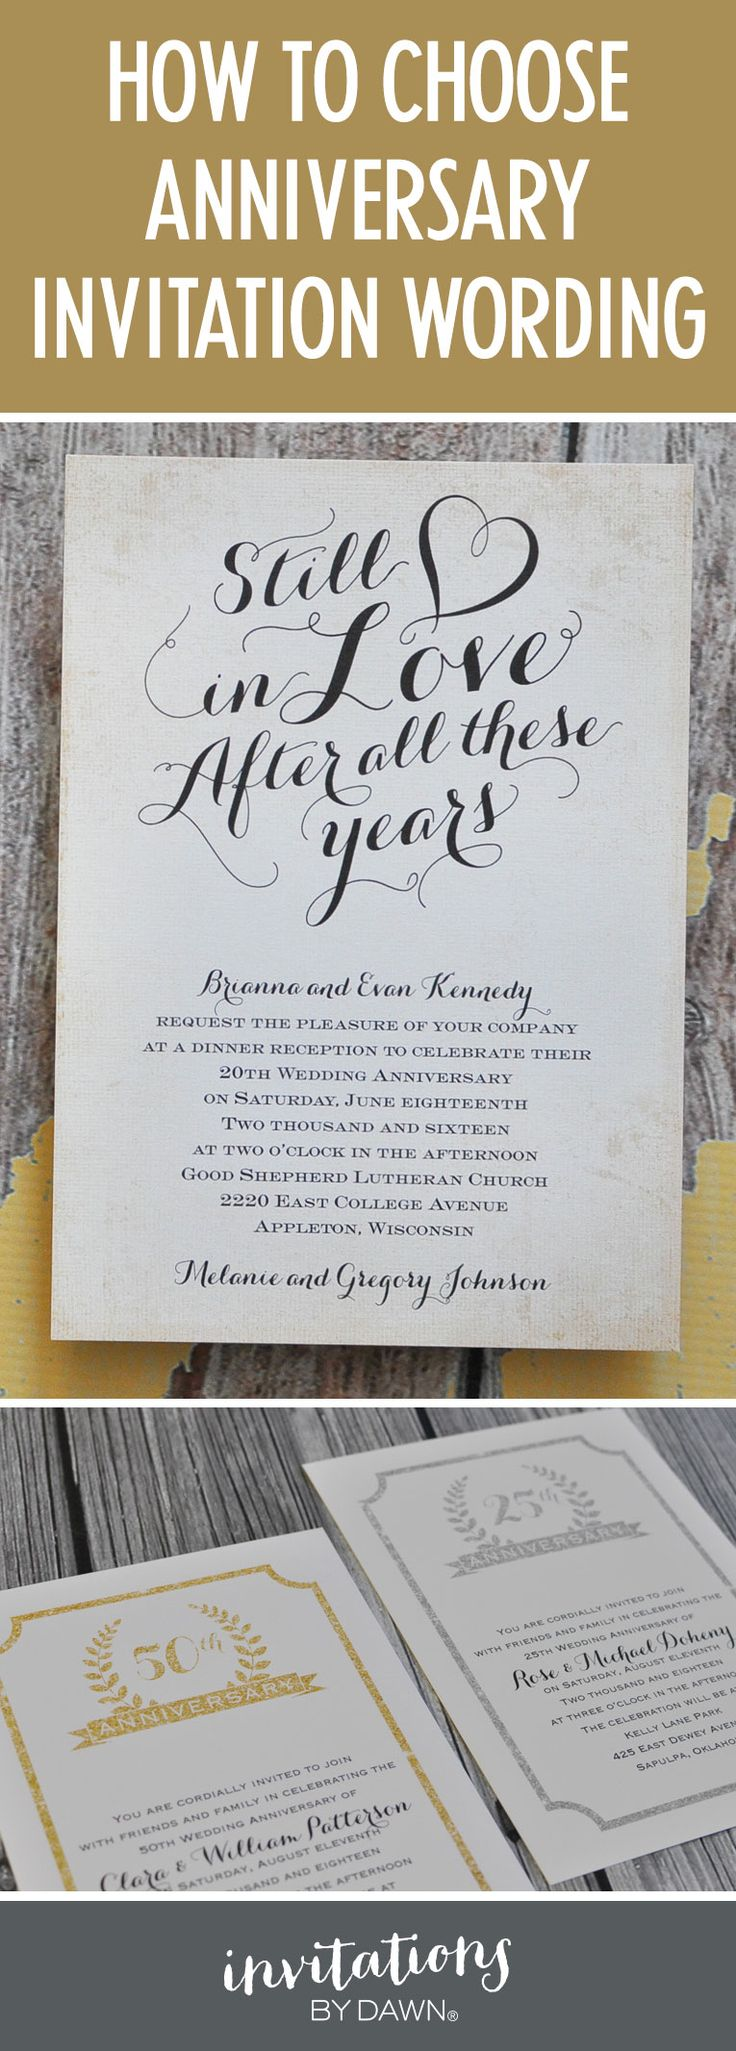 Finding the right wedding anniversary invitation wording wedding finding the right wedding anniversary invitation wording wedding anniversary pinterest anniversary party invitations anniversary parties and wedding stopboris Image collections